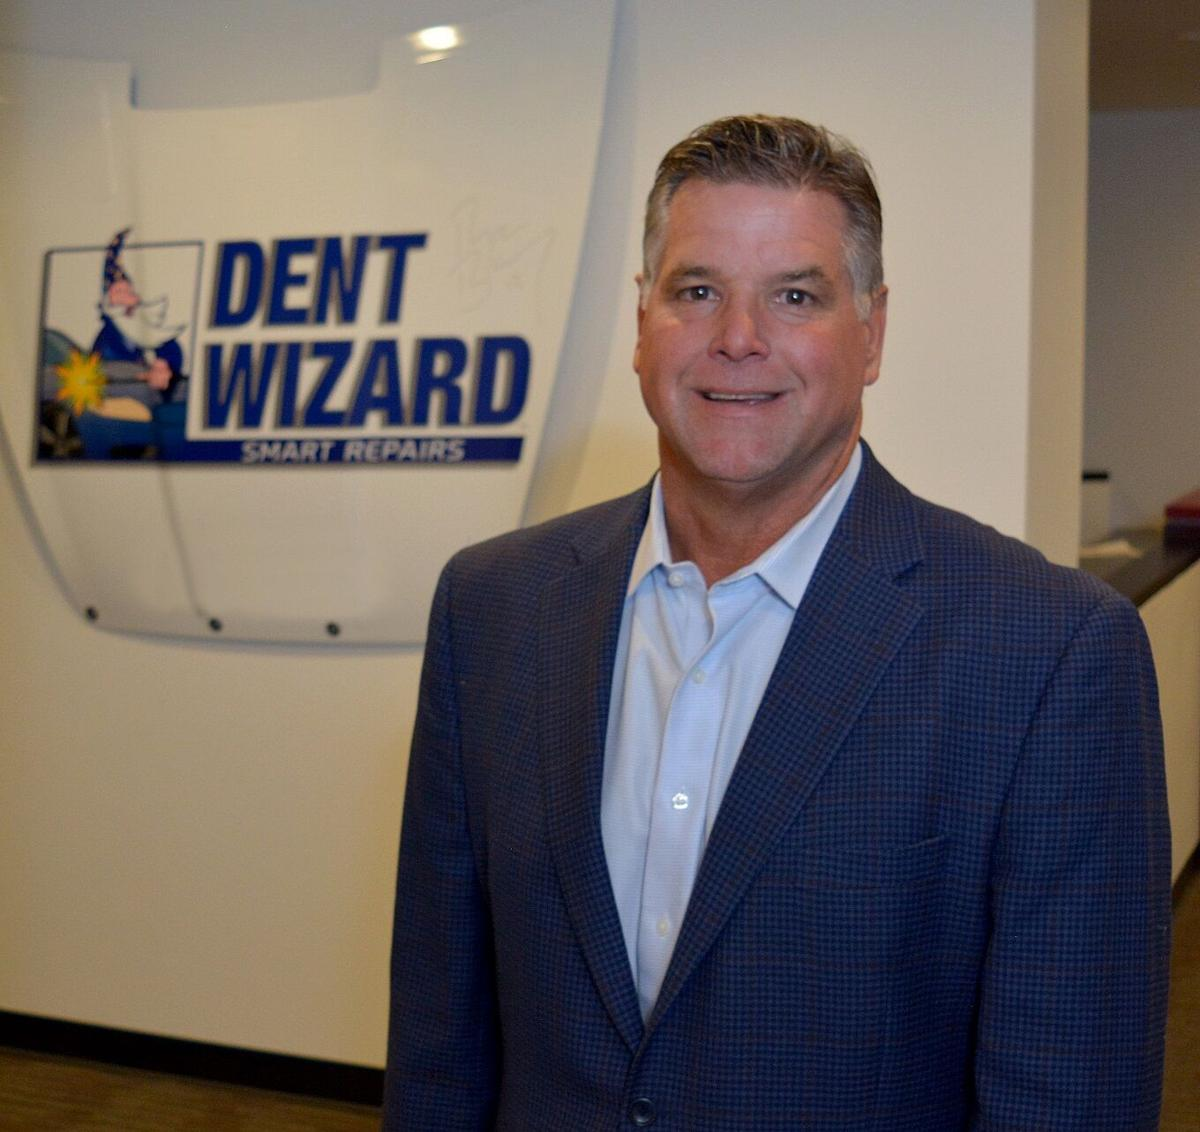 Mike Black, CEO of Dent Wizard International